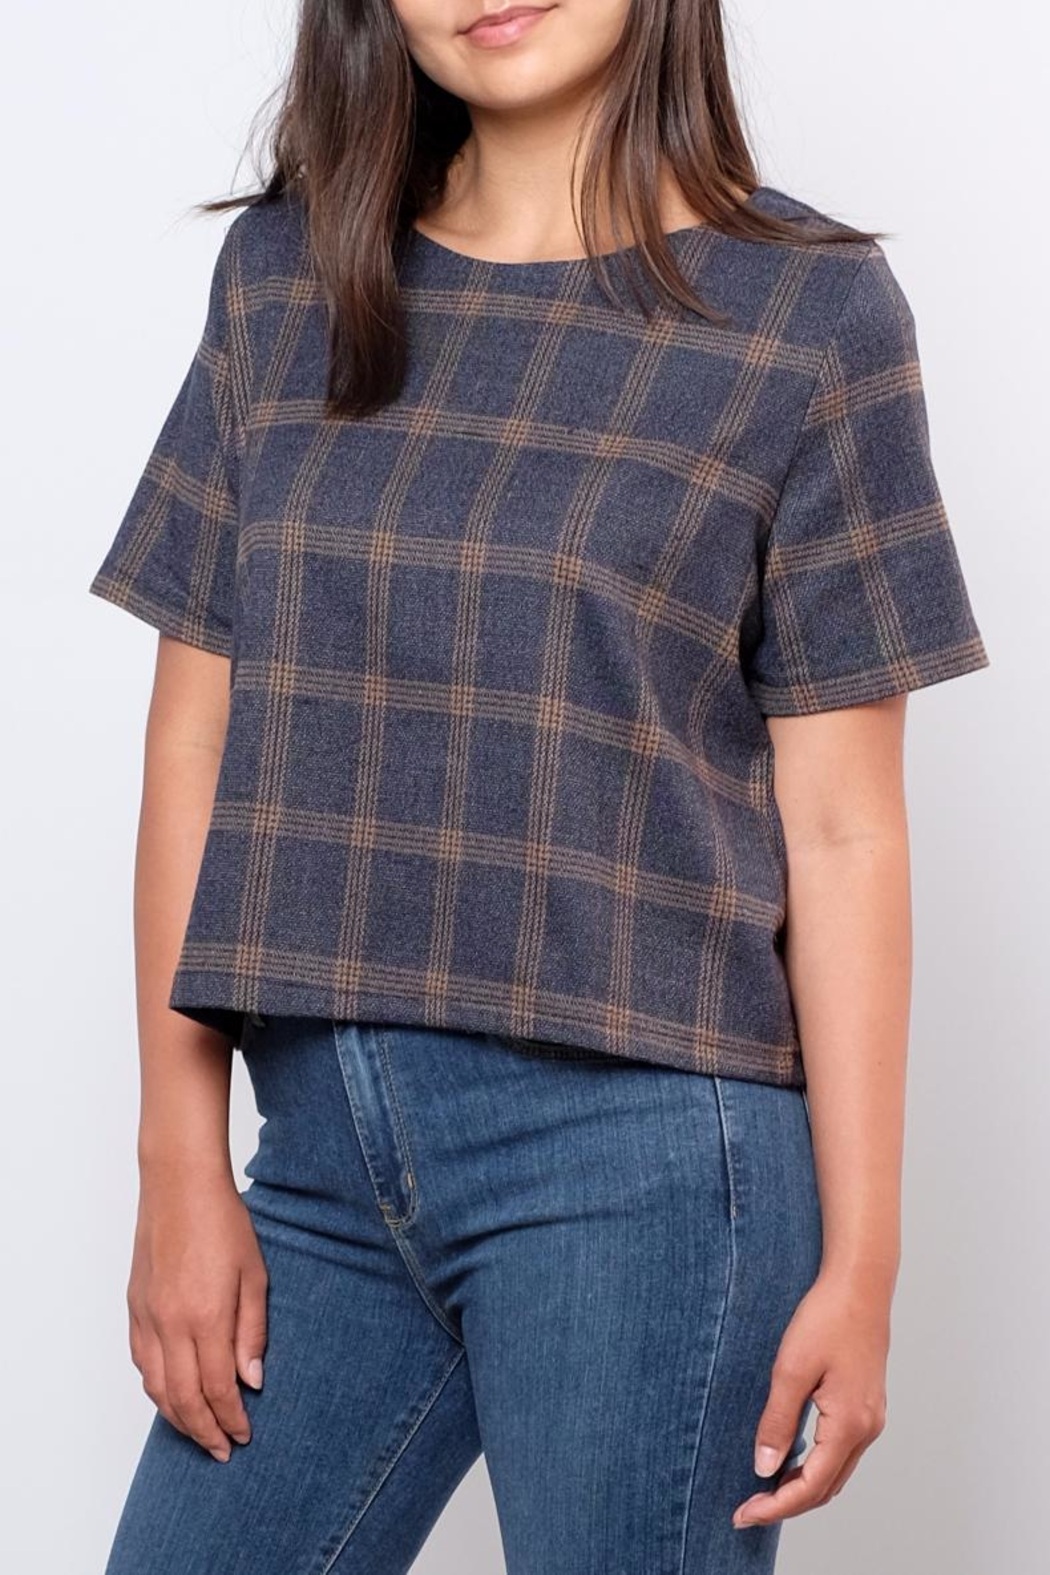 Everly Plaid Woven Top - Side Cropped Image